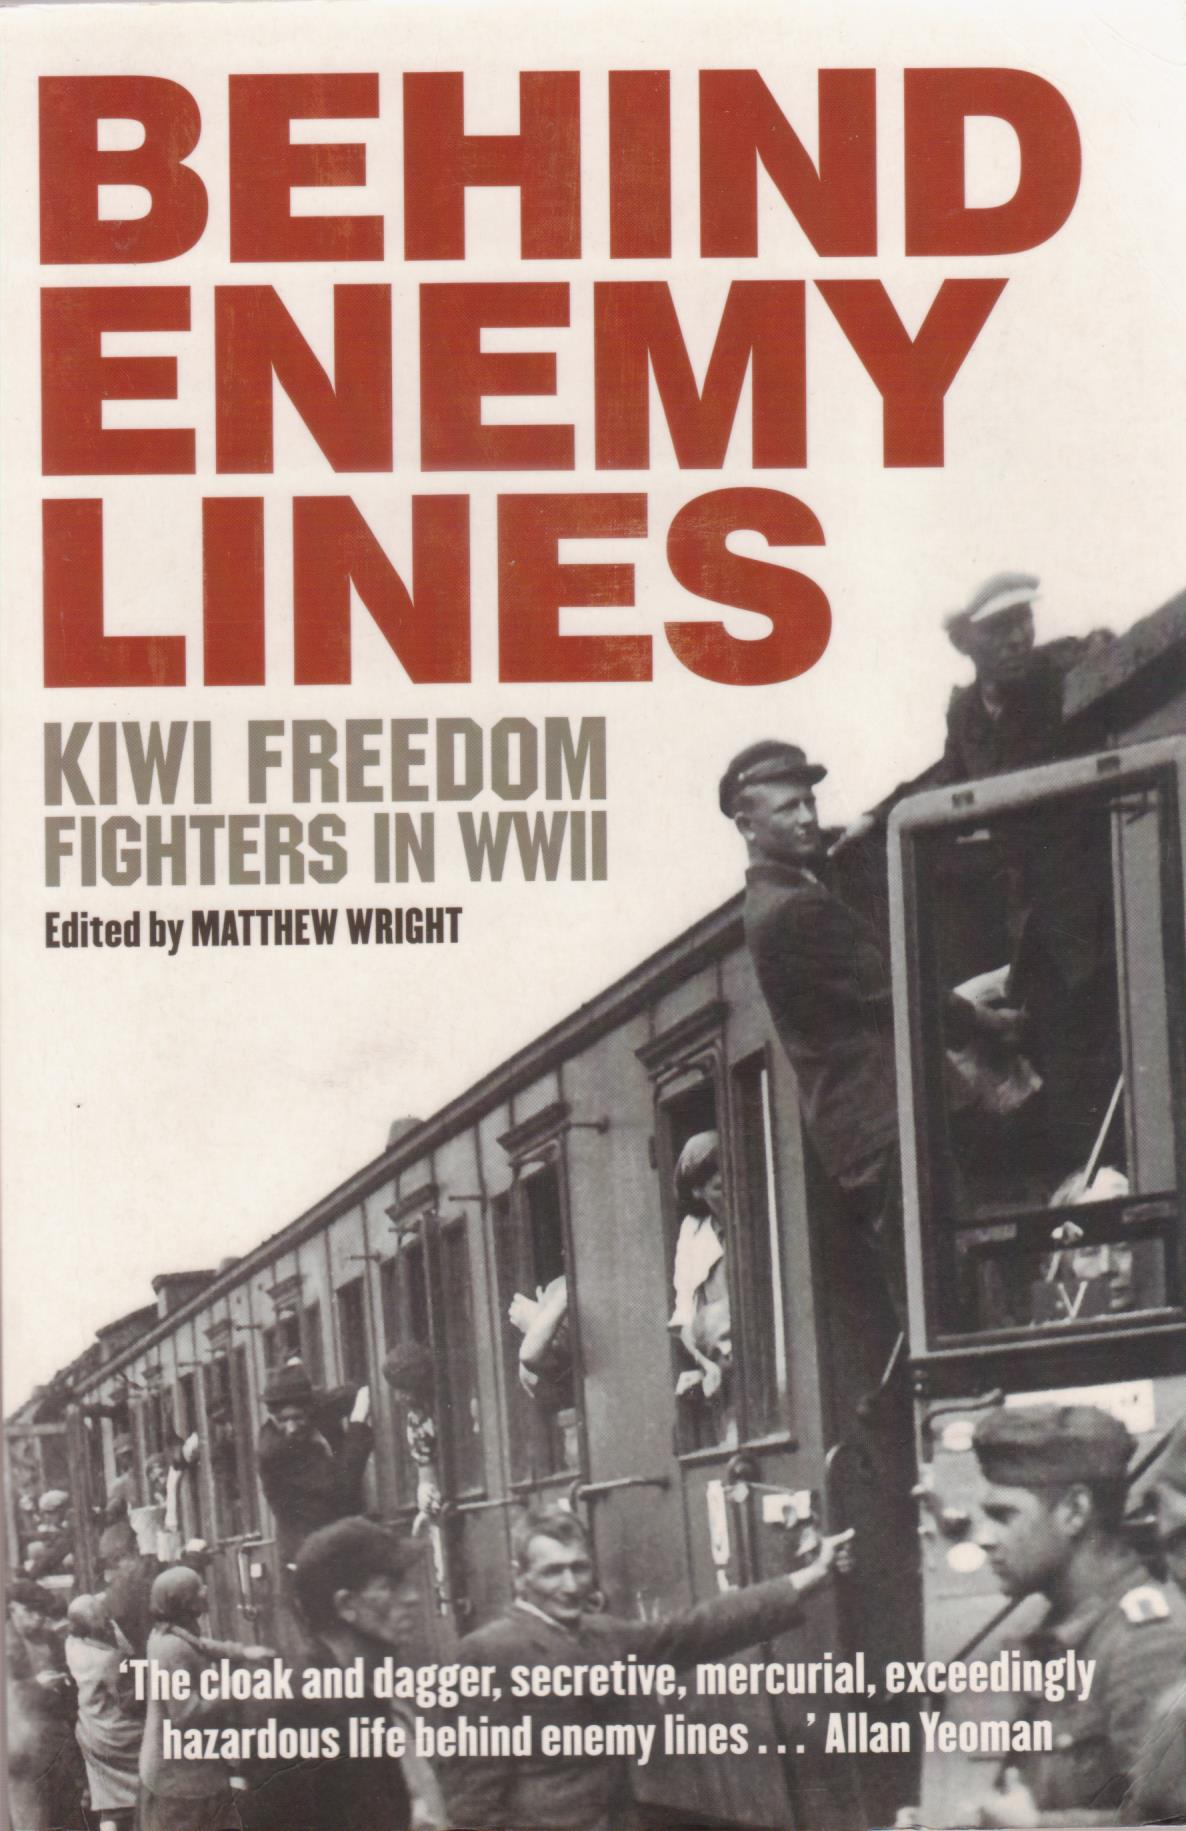 cover image of Behind Enemy Lines Kiwi Freedom Fighters in WWII for sale in New Zealand